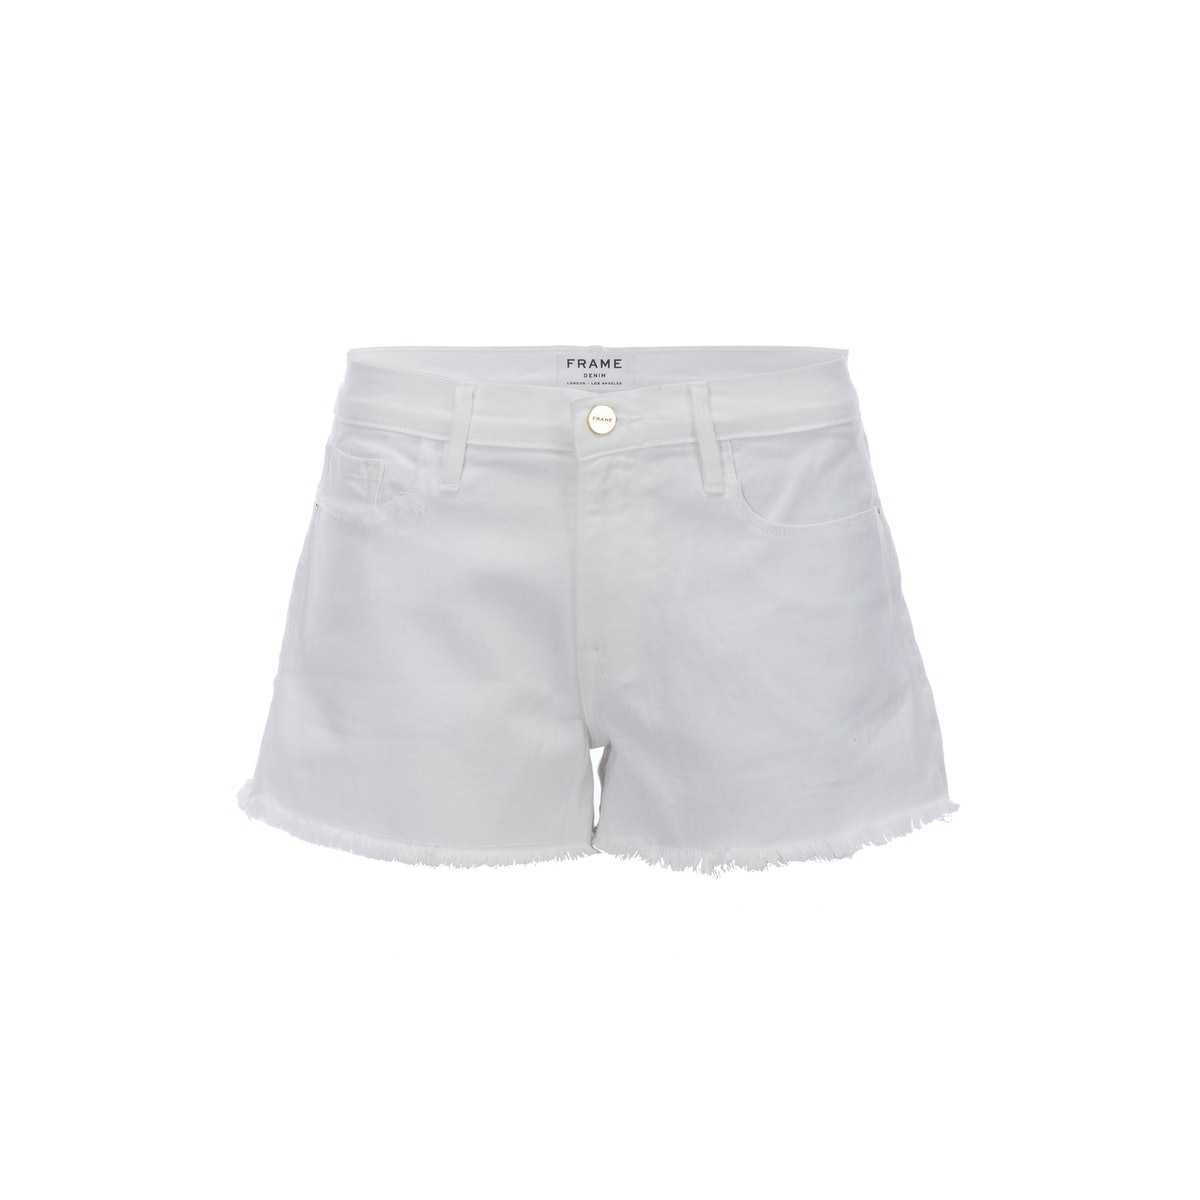 Frame Exclusive short in white